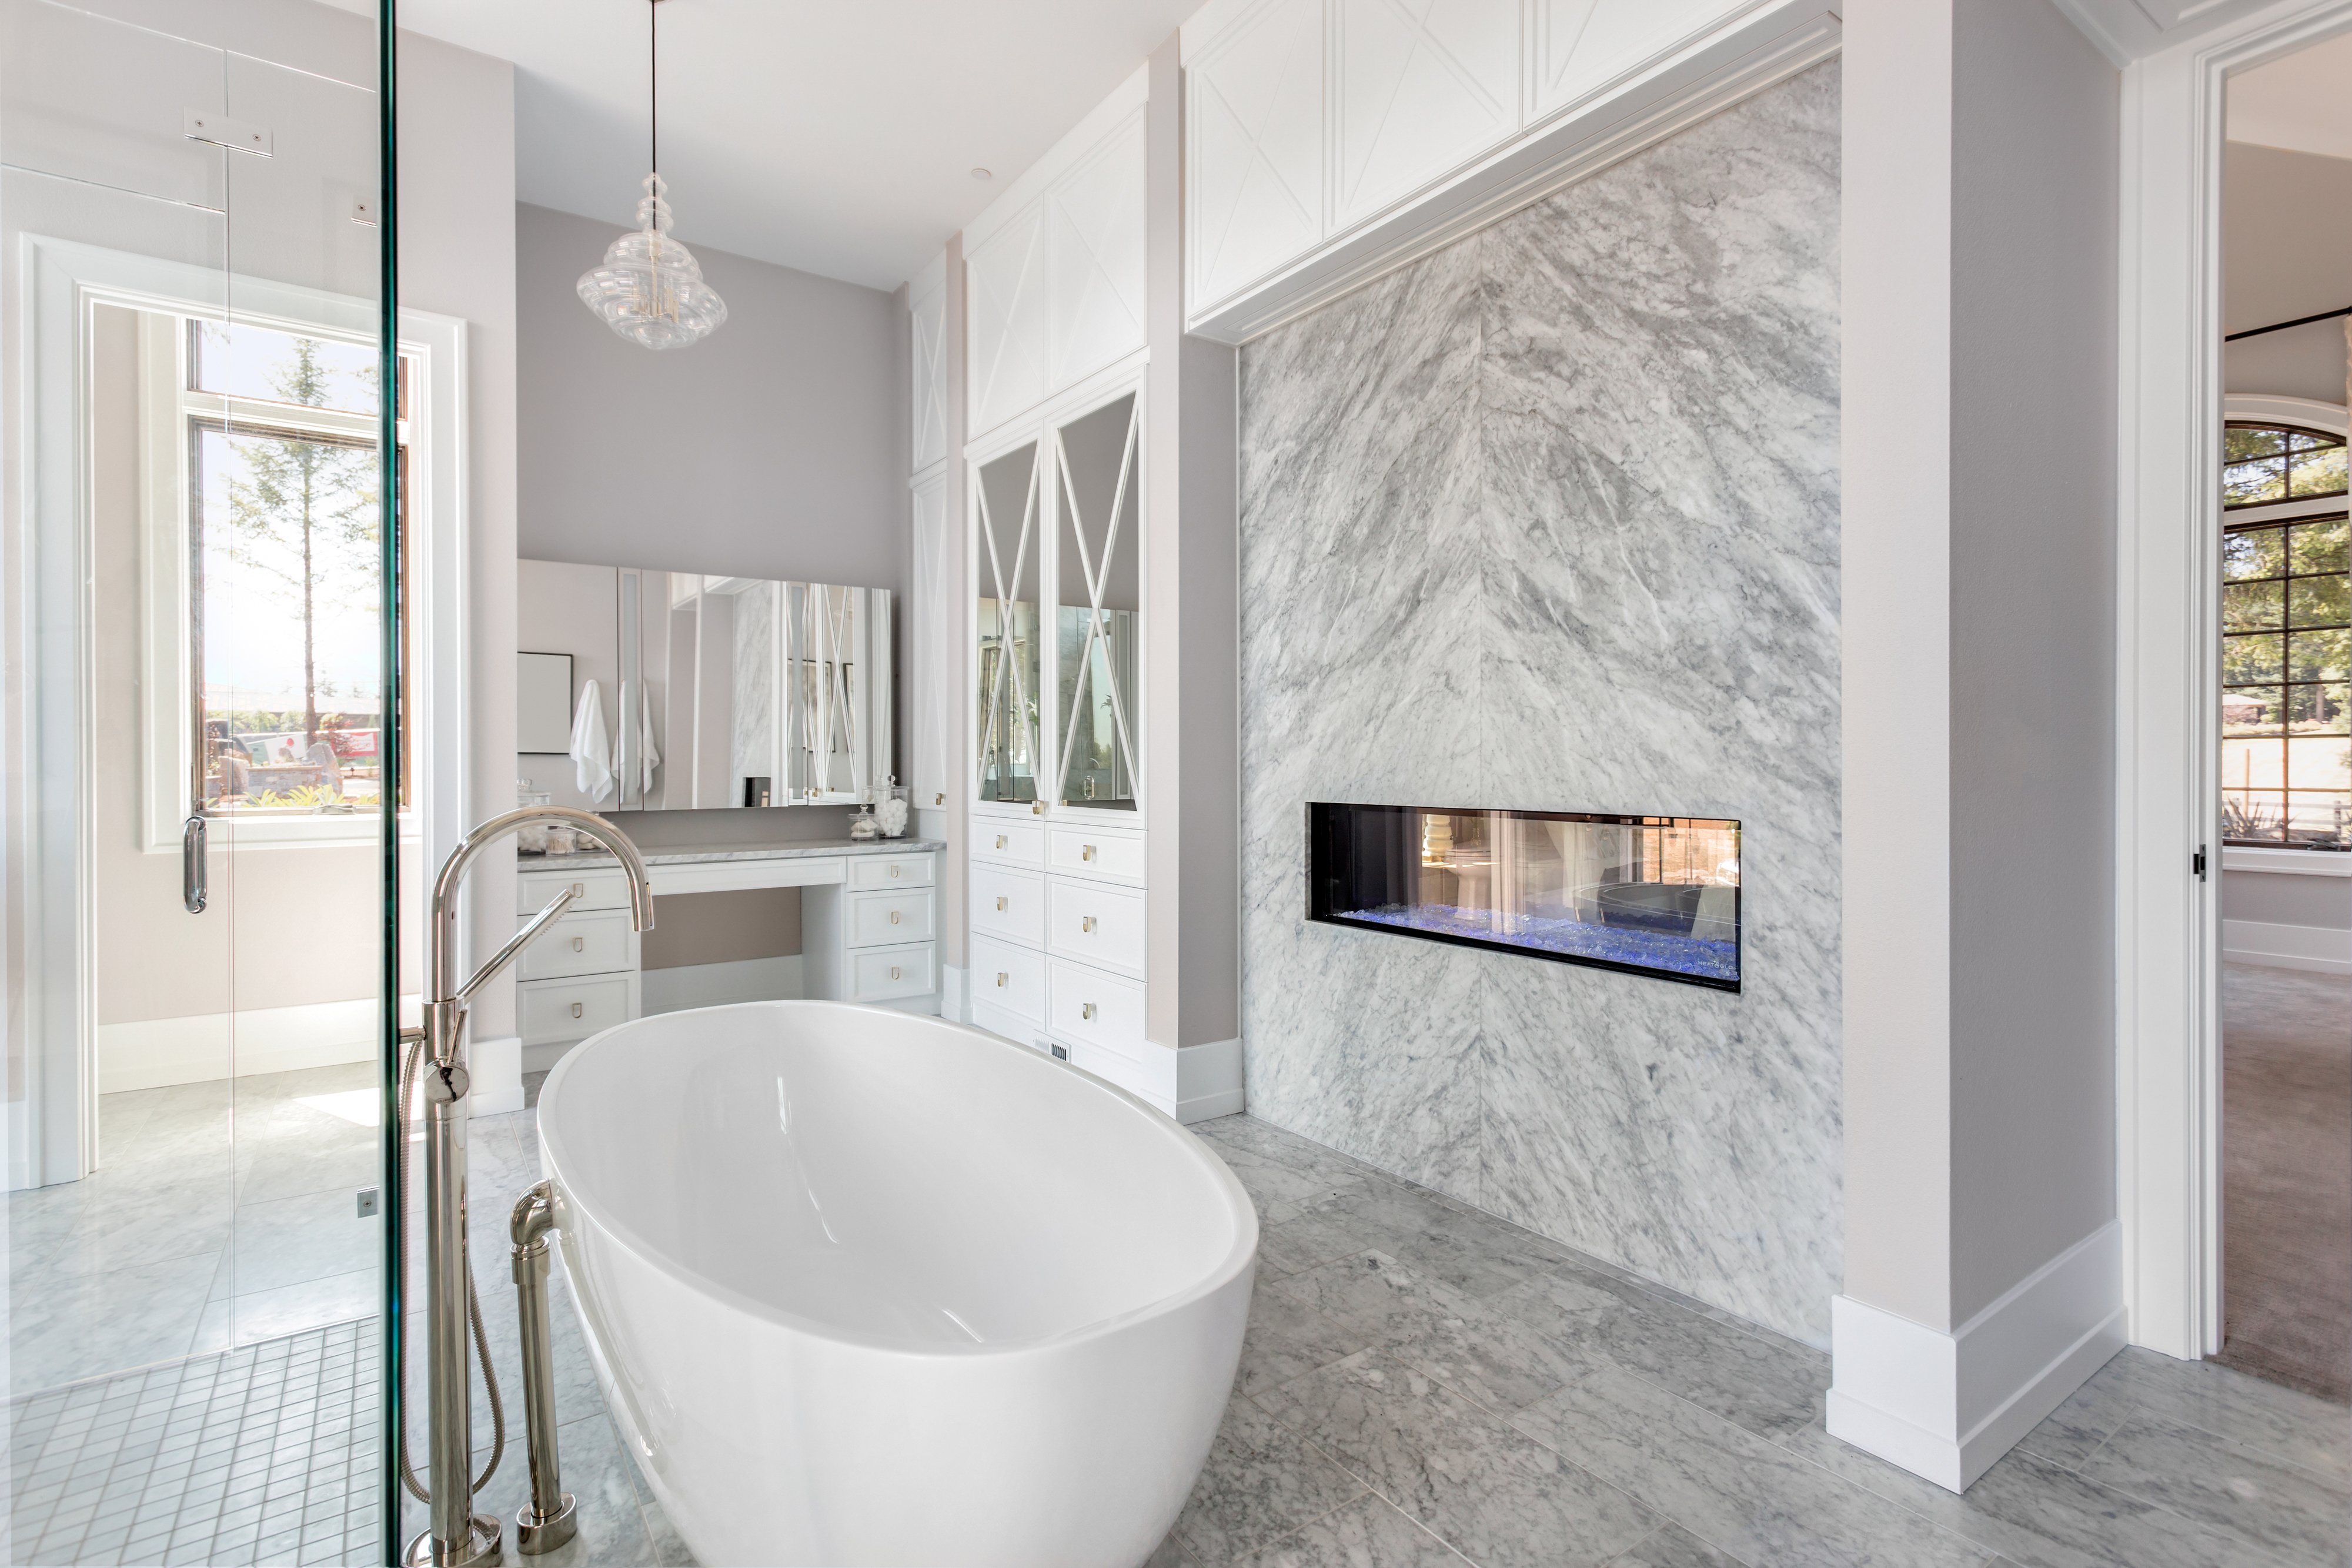 Elegant bathroom with fireplace and bath